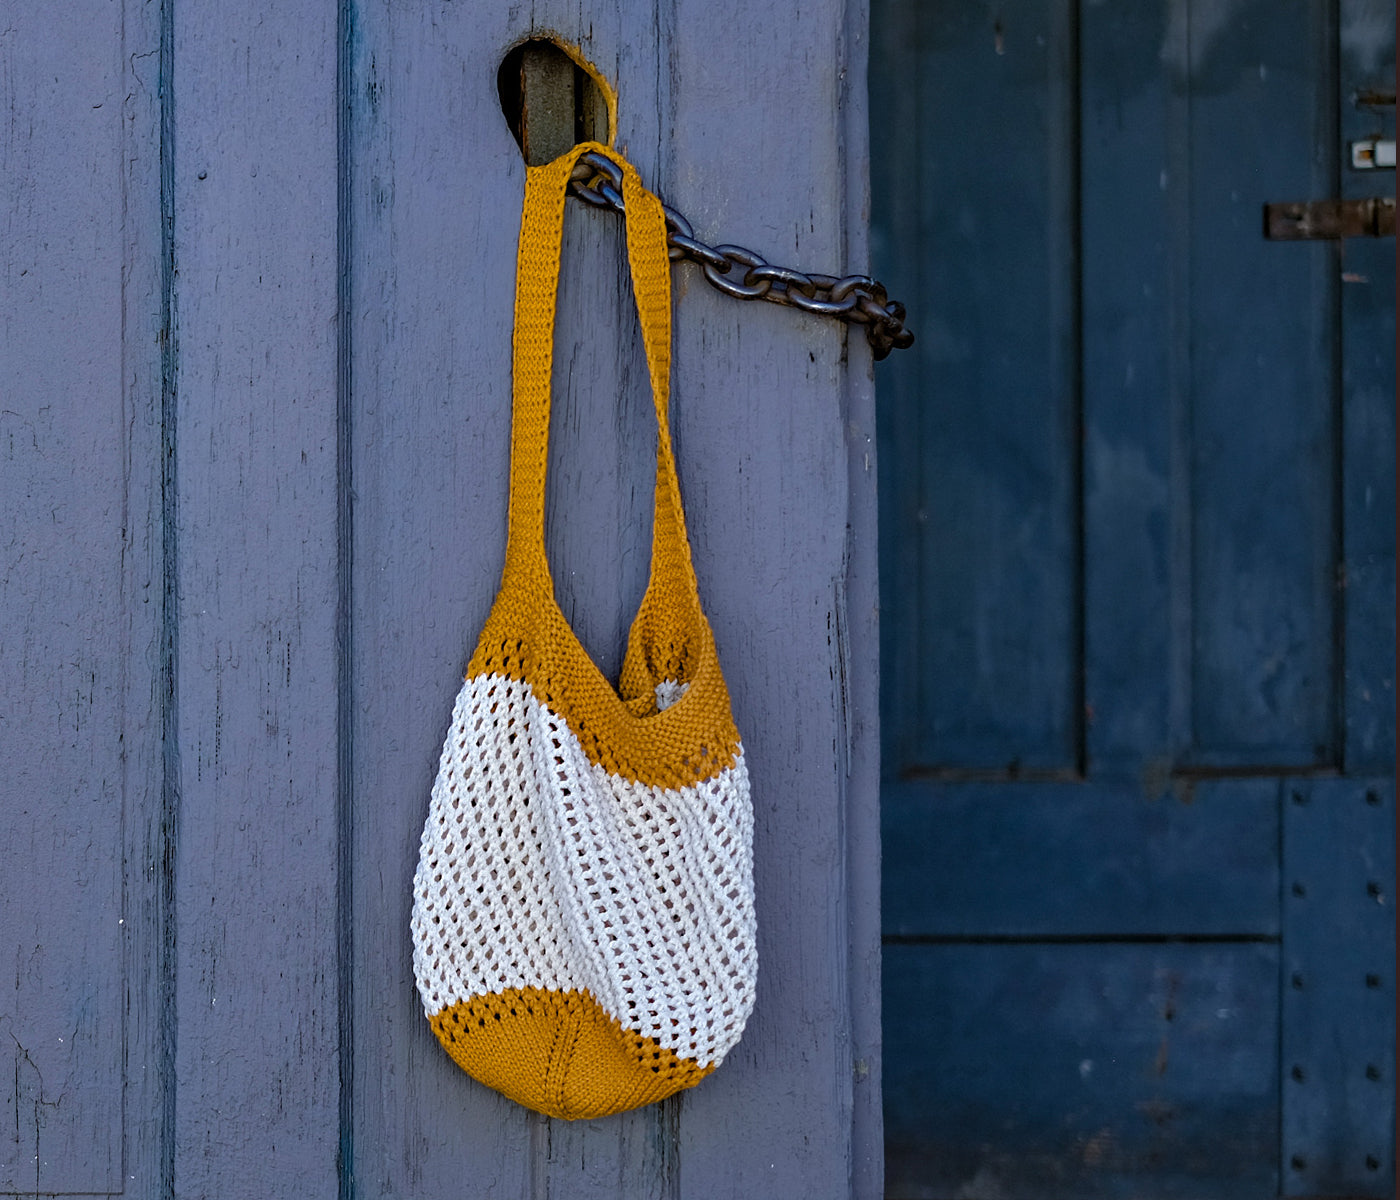 Rae's eco-friendly market bag made with recycled fiber yarn